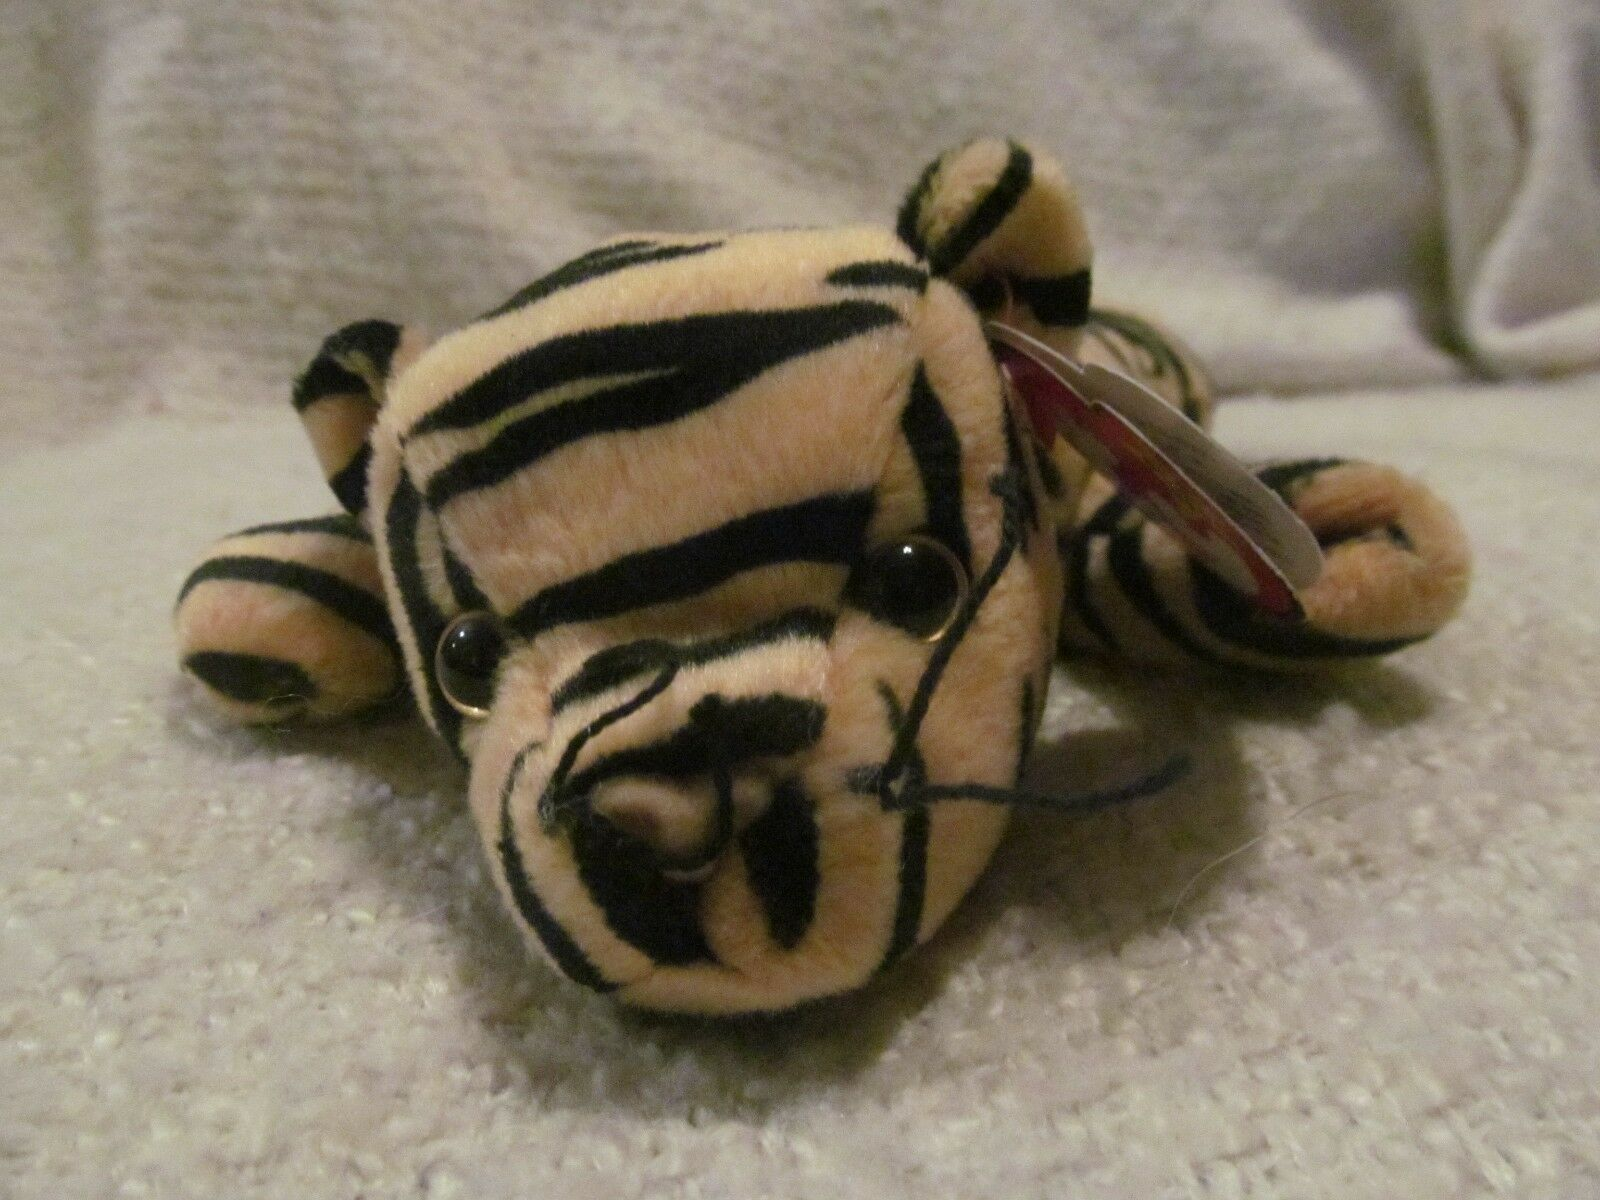 TY BEANIE BABIES - STRIPES -RETIRED-WITH TAG ERRORS-GREAT CONDITION